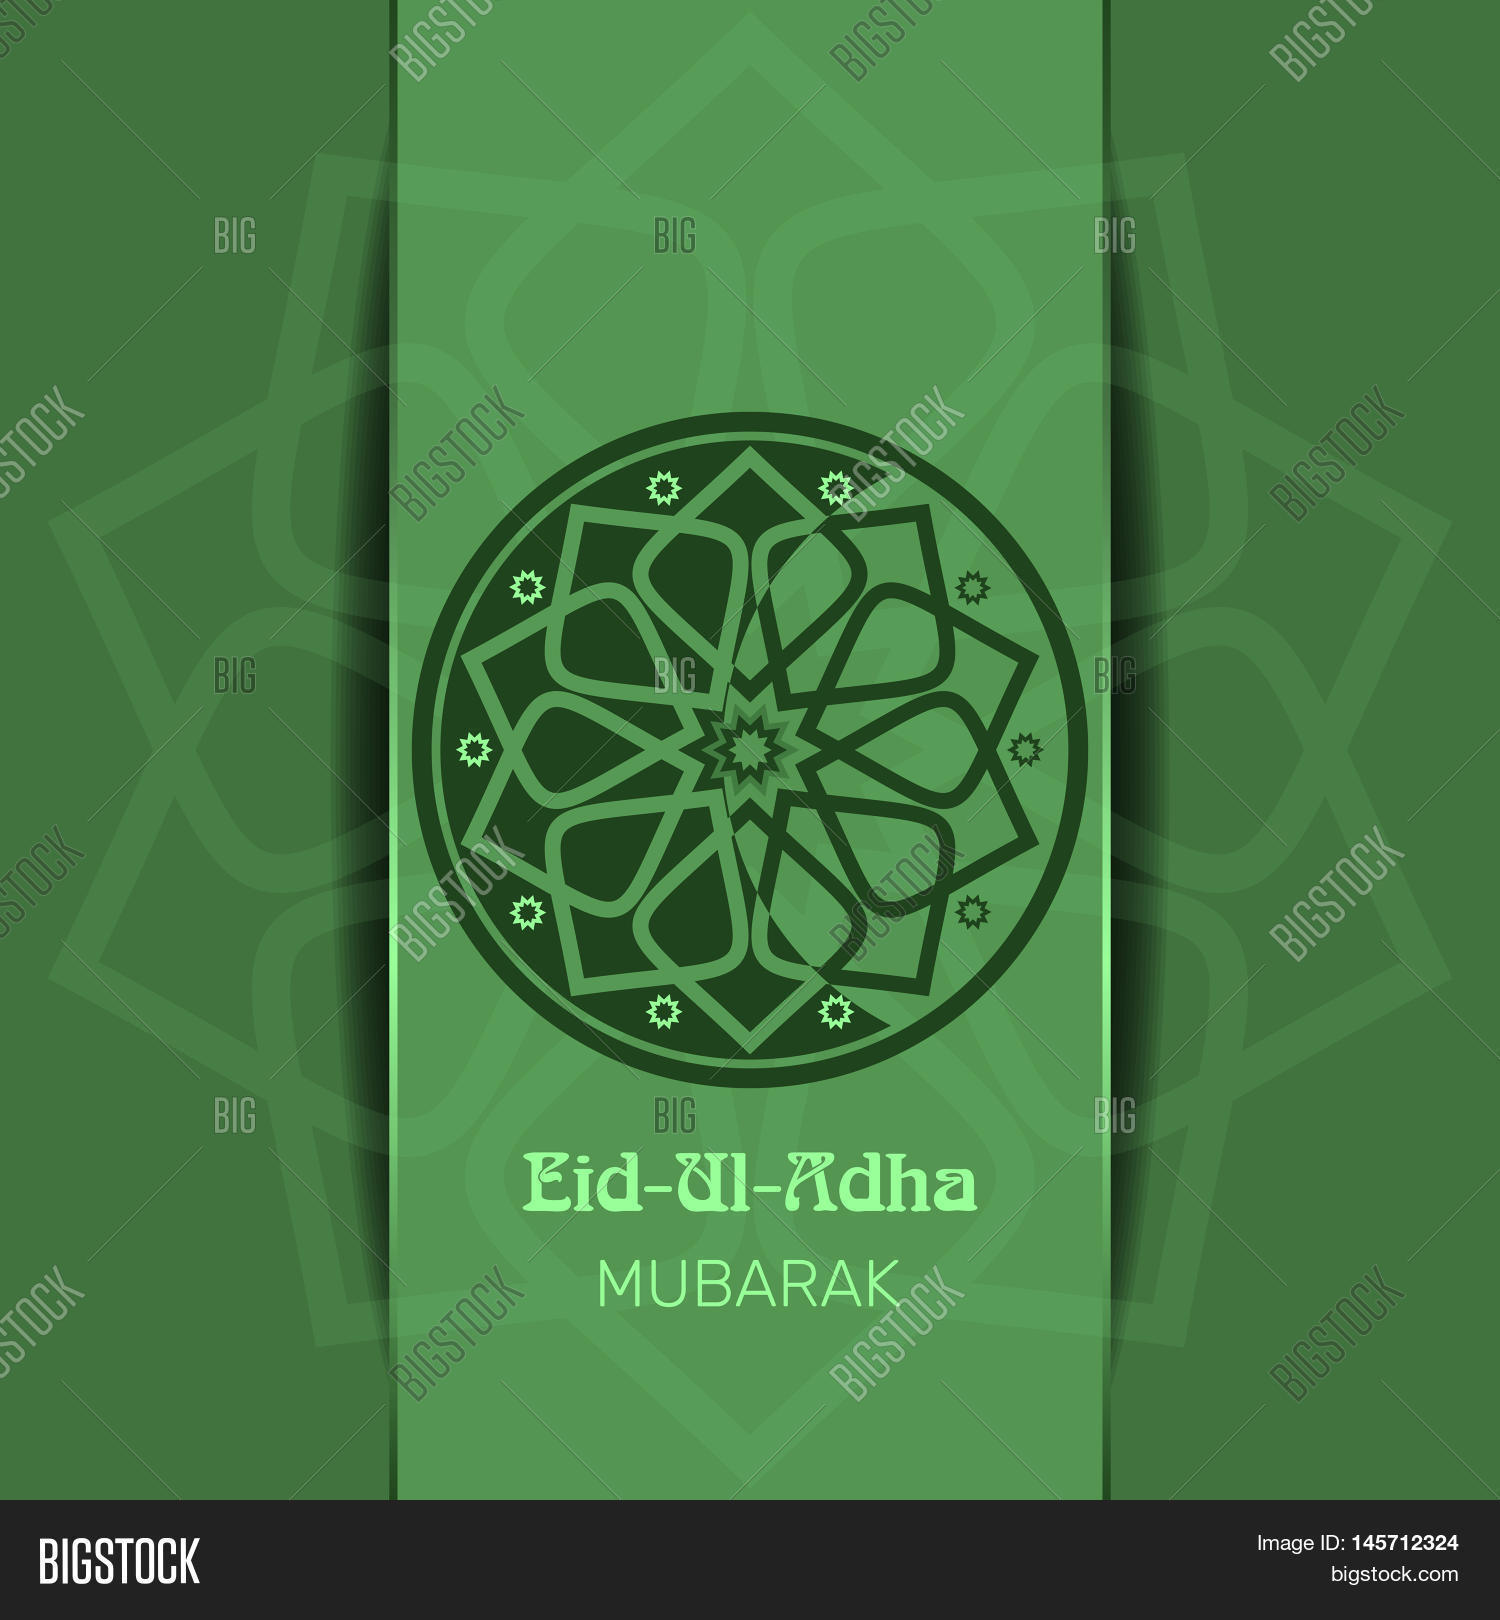 Islamic green background image photo bigstock islamic green background with an inscription in arabic eid al adha kristyandbryce Image collections